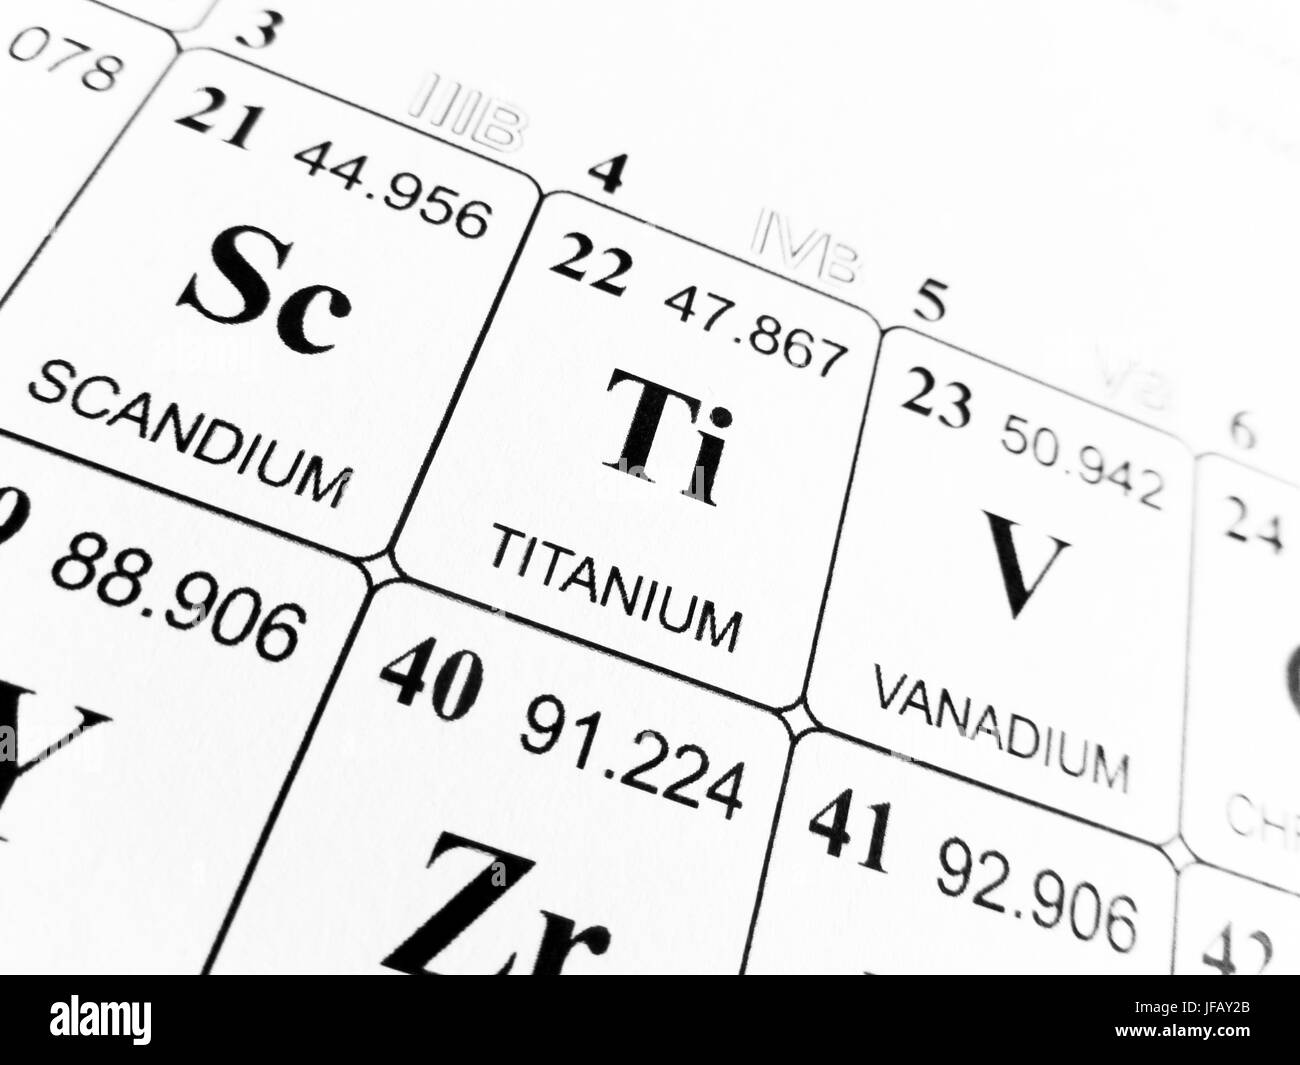 Titanium On The Periodic Table Of The Elements